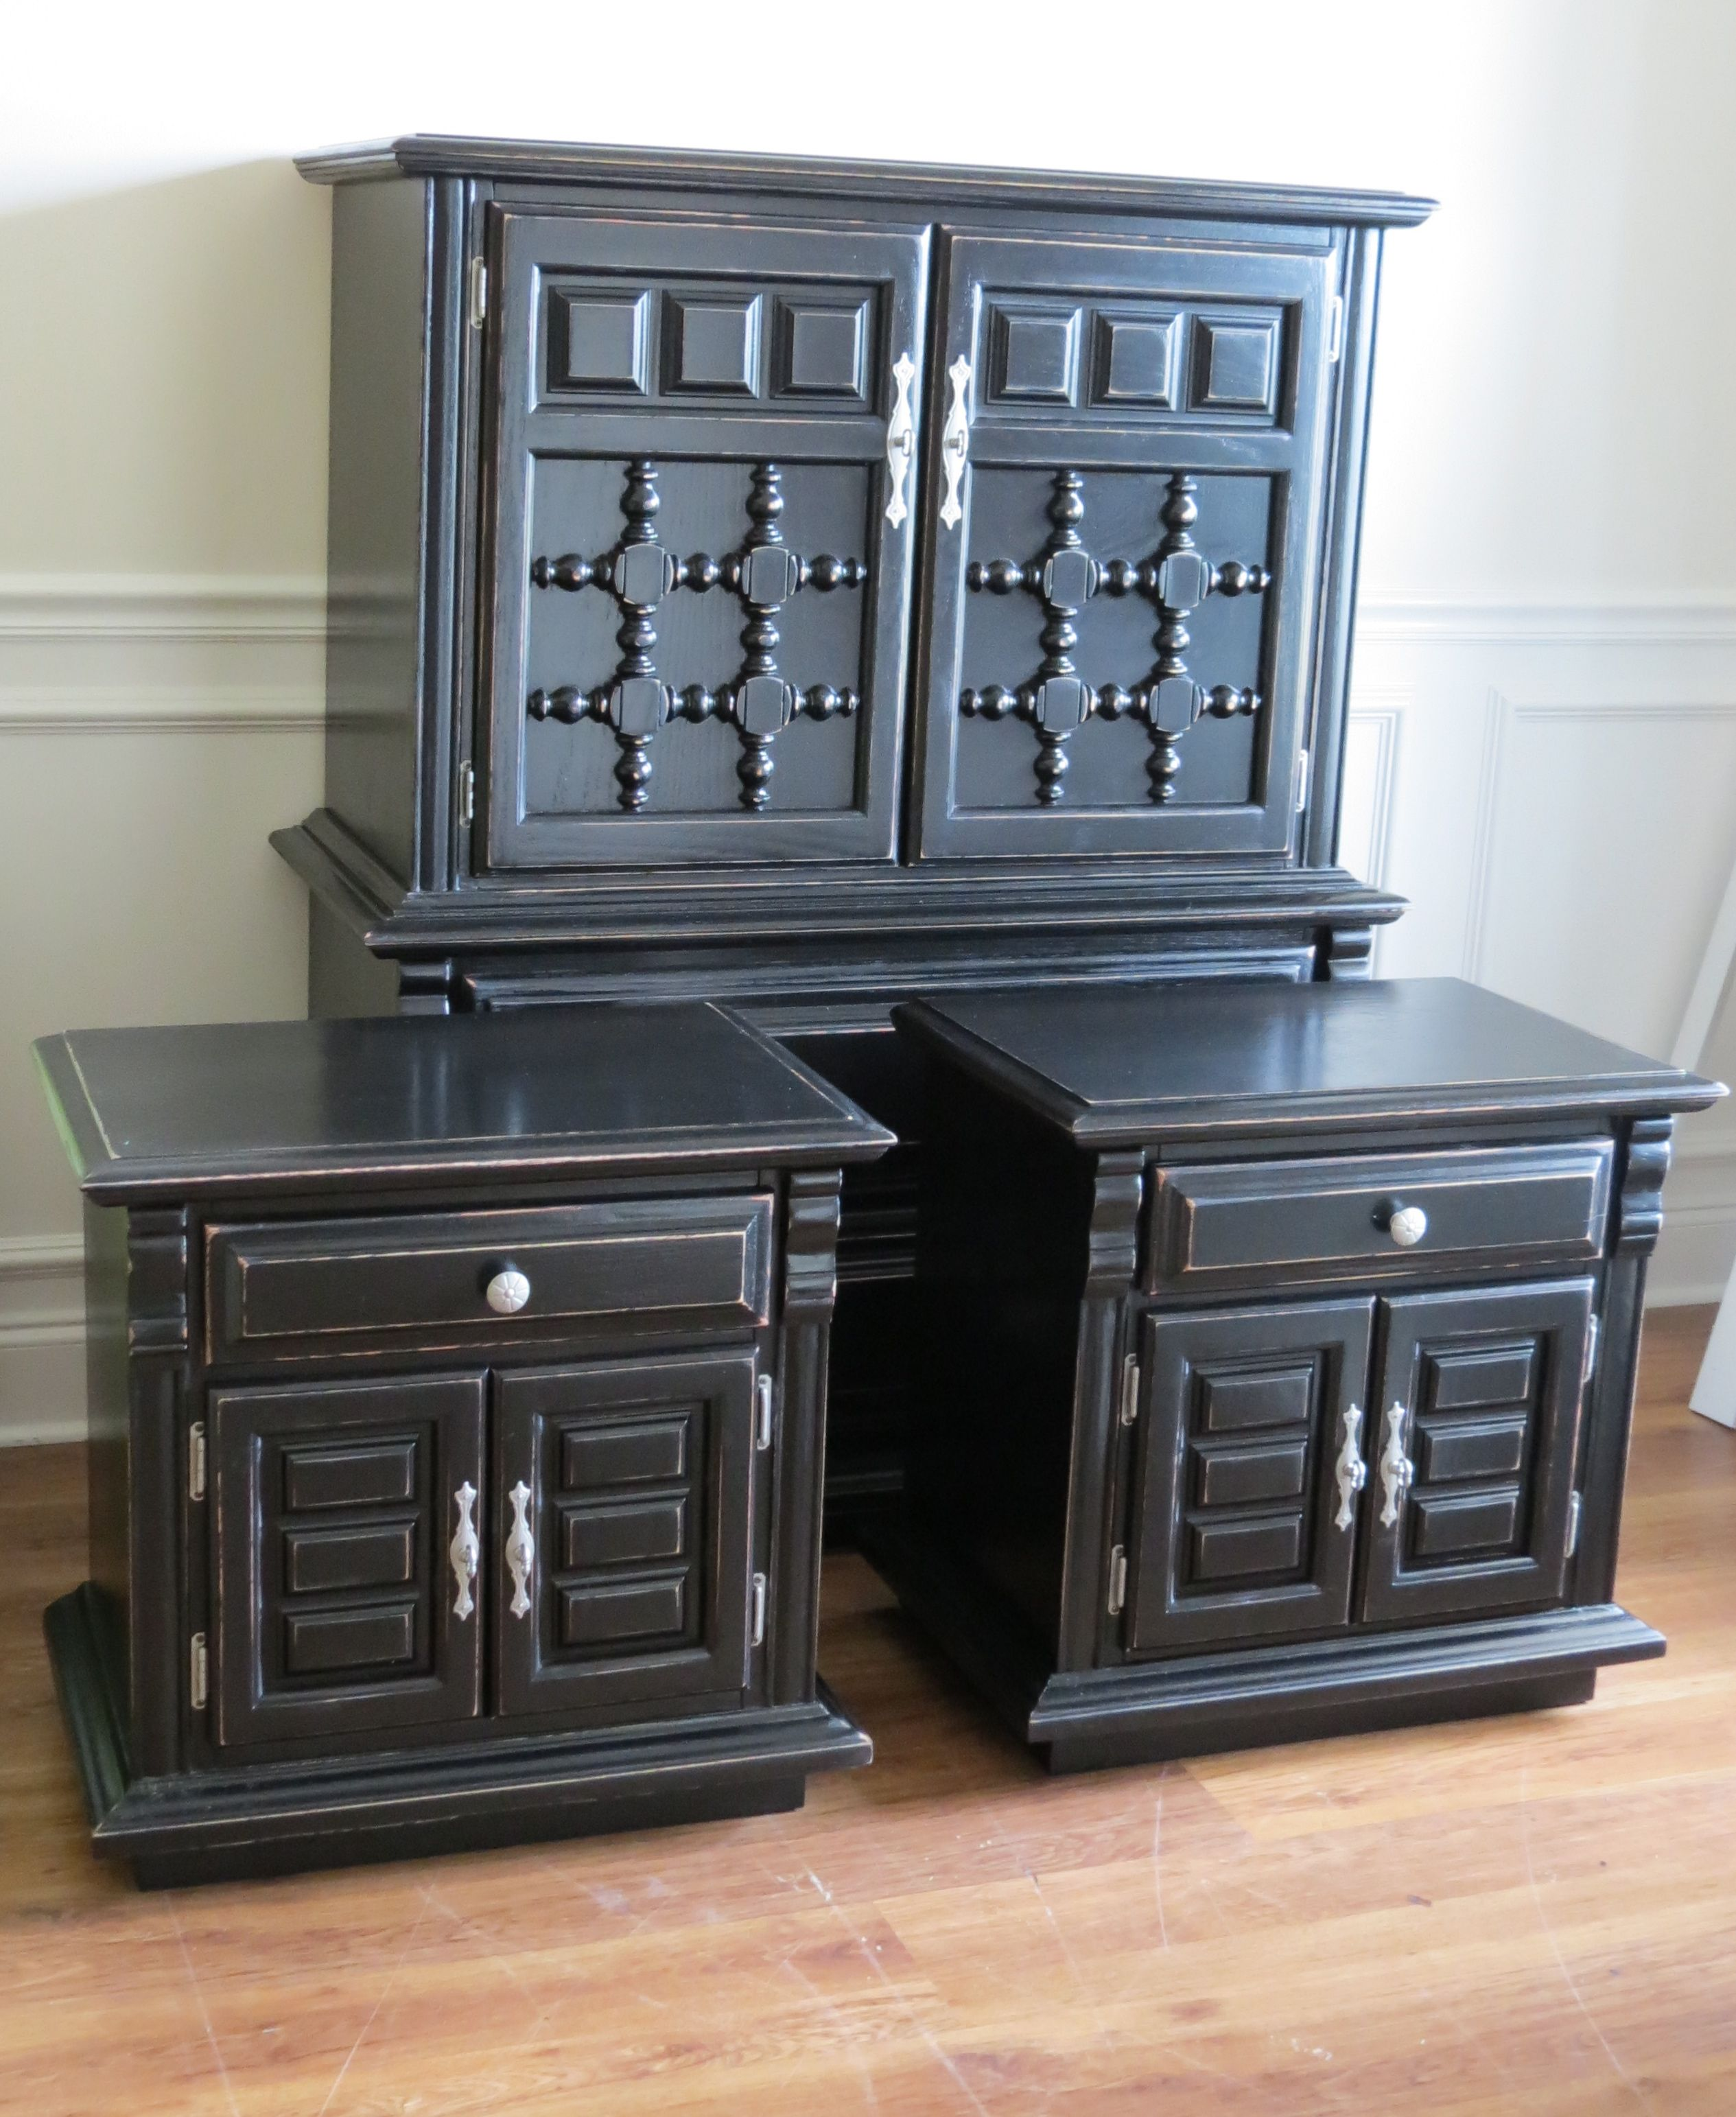 black painted furniture, this is how you make those clunky